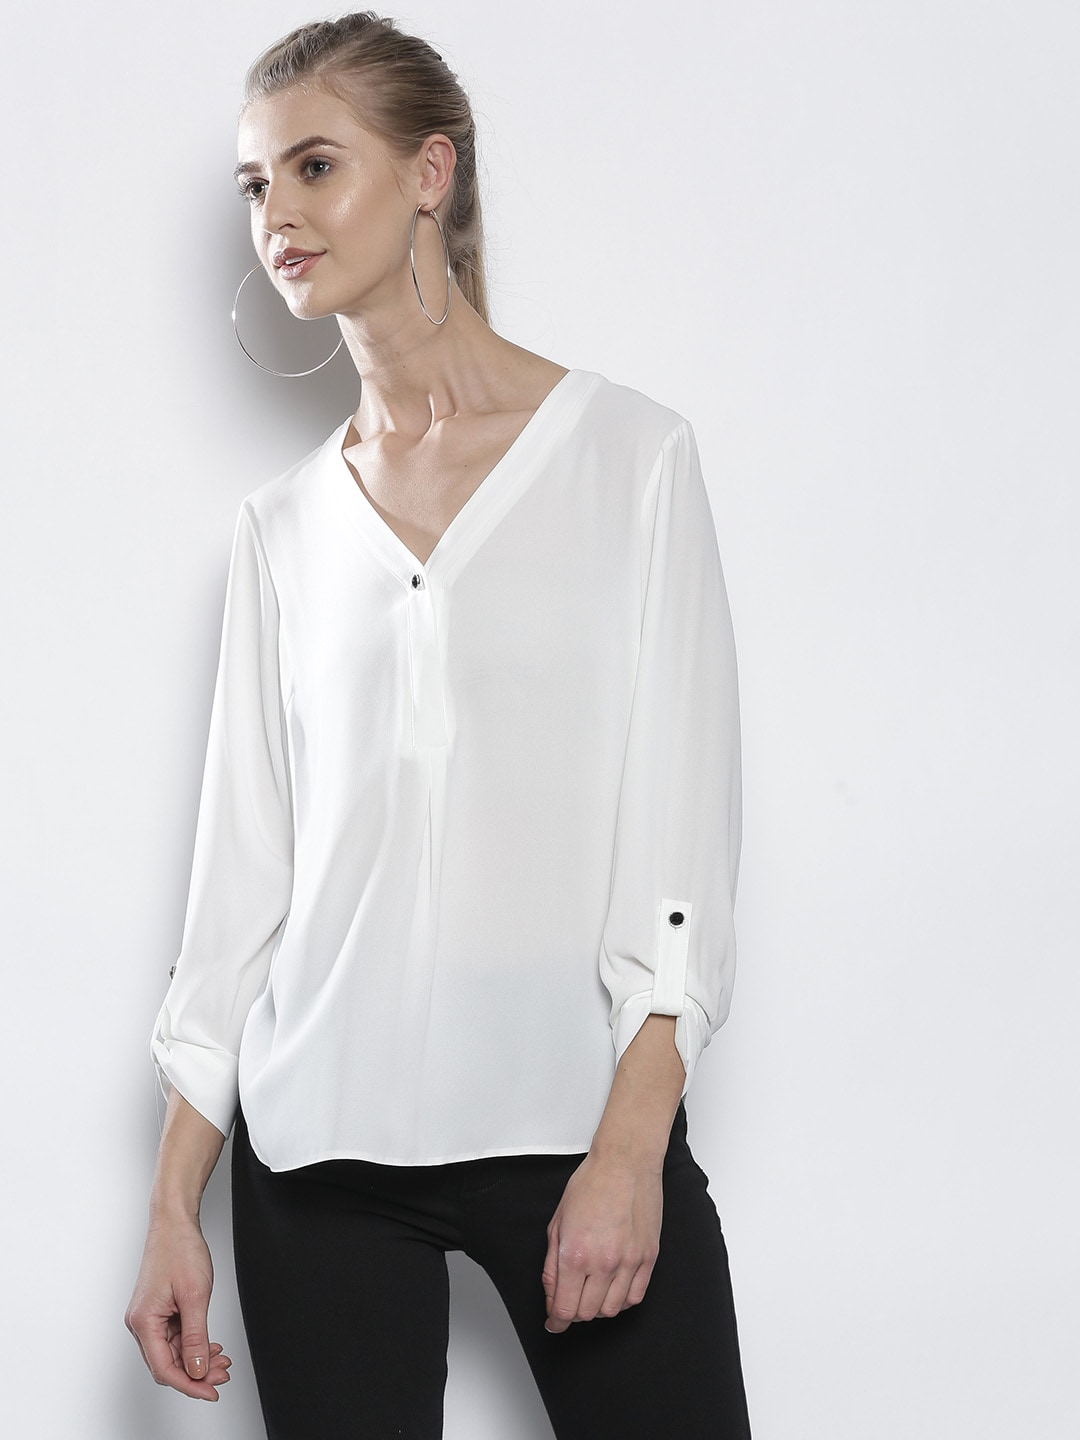 b88f344d6dfde0 Off White - Buy Off White online in India